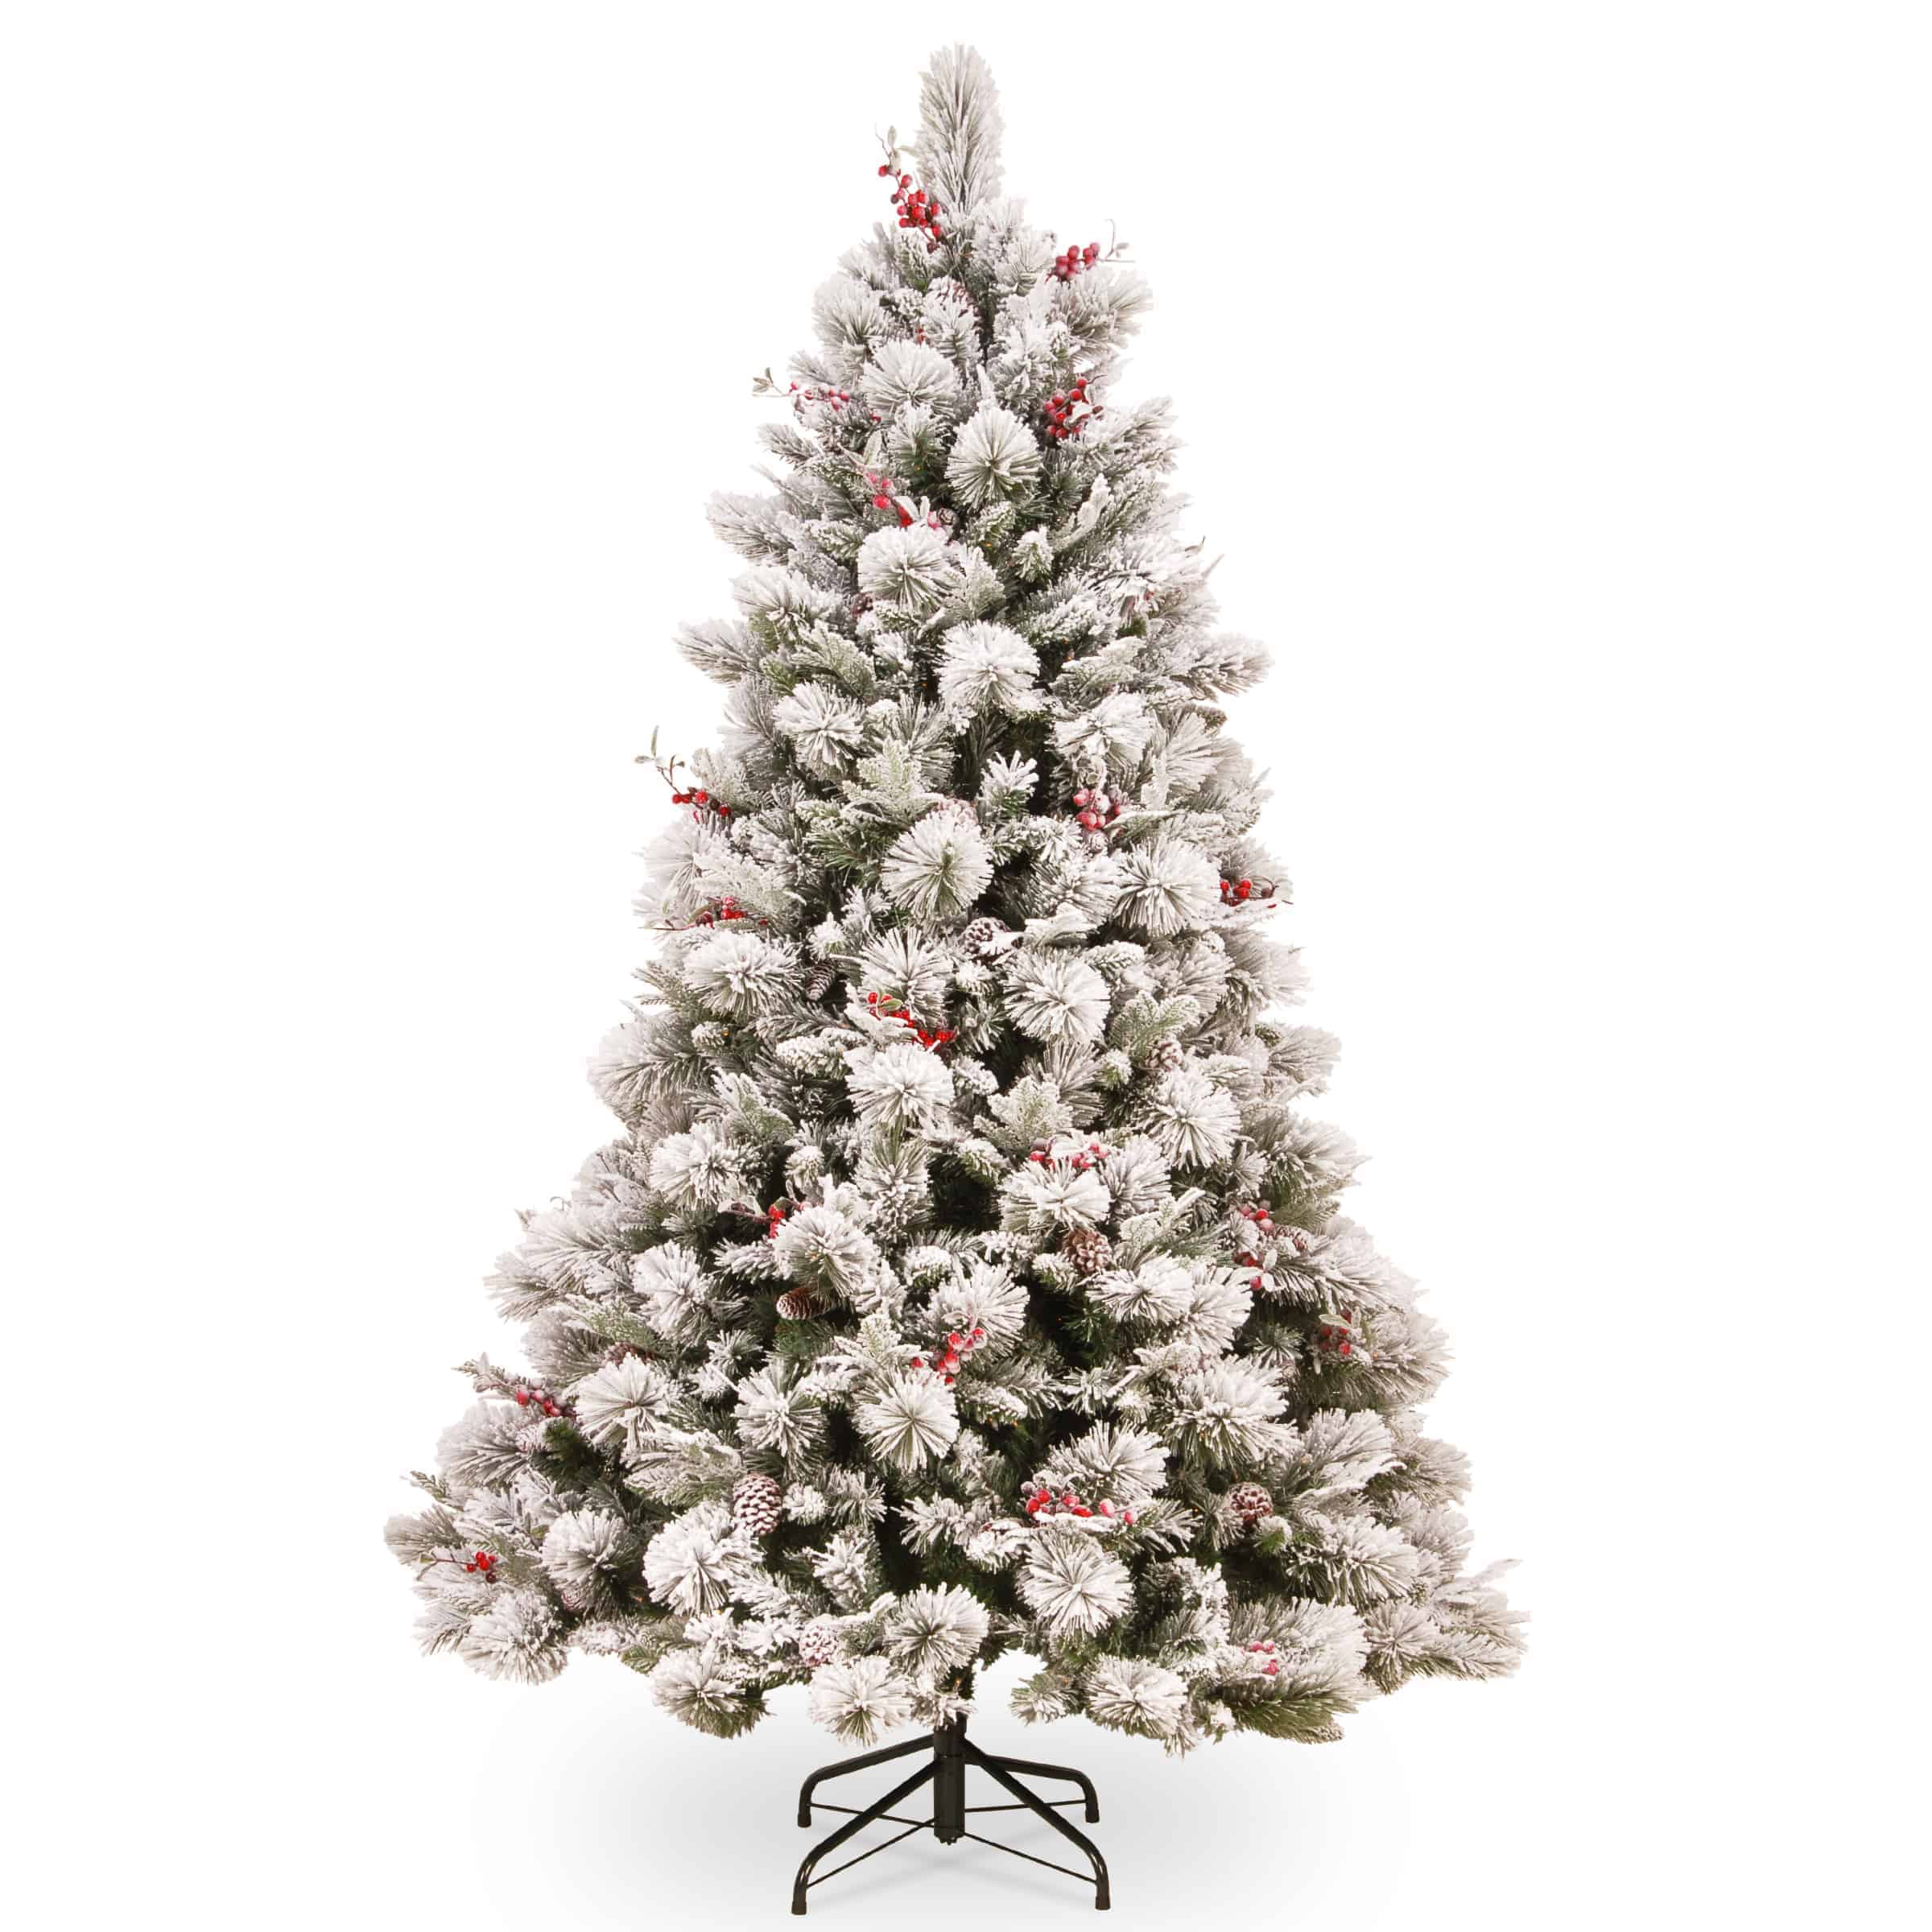 7.5 ft Snowy Bedford Pine Artificial Christmas Tree - Artificial Christmas Trees For Sale Dublin Ireland